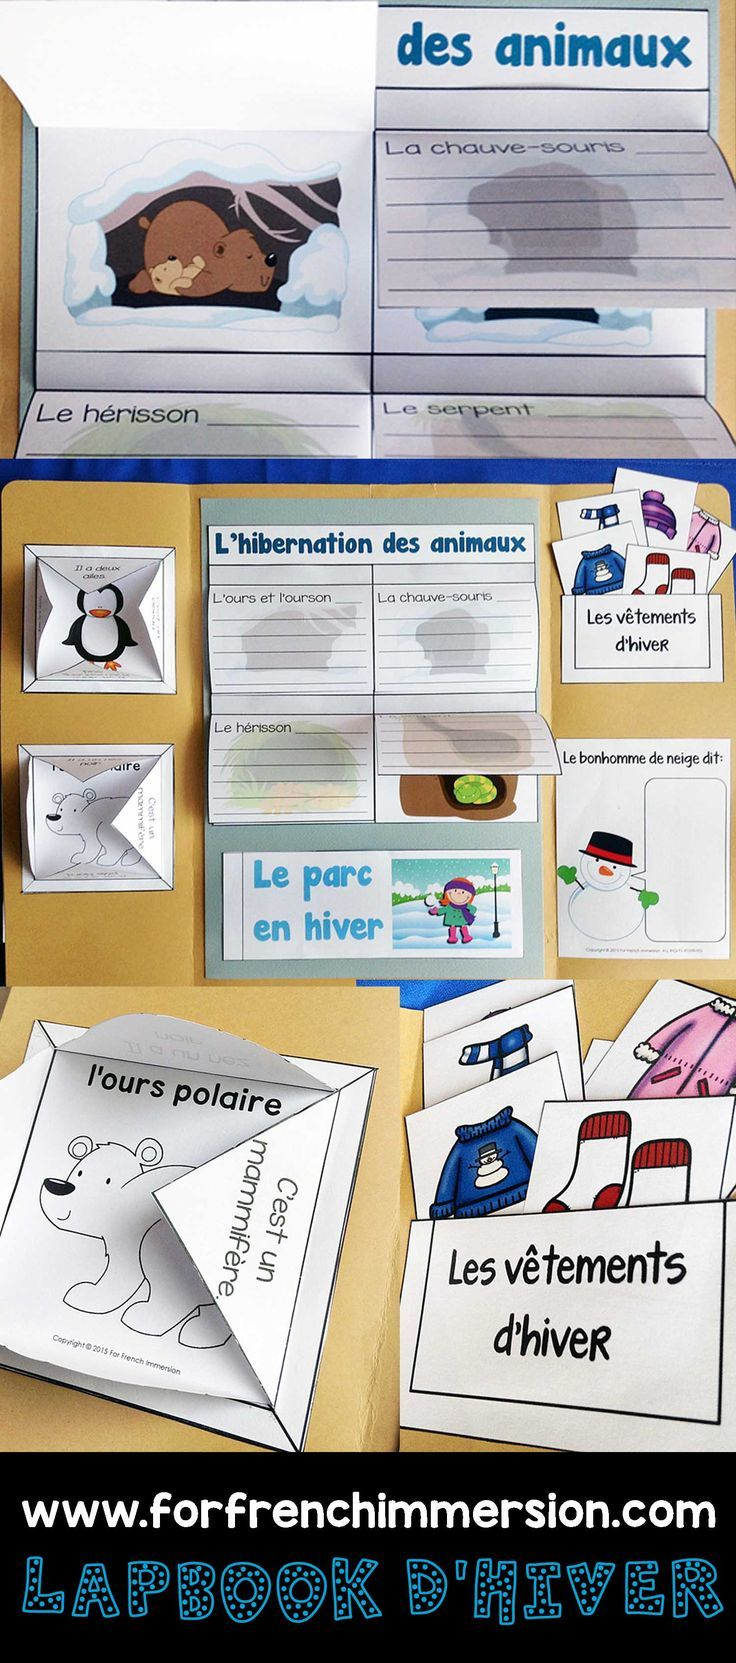 French Winter Lapbook – lapbook d'hiver: fun, interactive activities to practive vocabulary for winter clothing, writing prompts, hibernation of animals flaps, and more! #frenchwinter #frenchimmersion #corefrench #hiver #frenchTpT #forfrenchimmersion